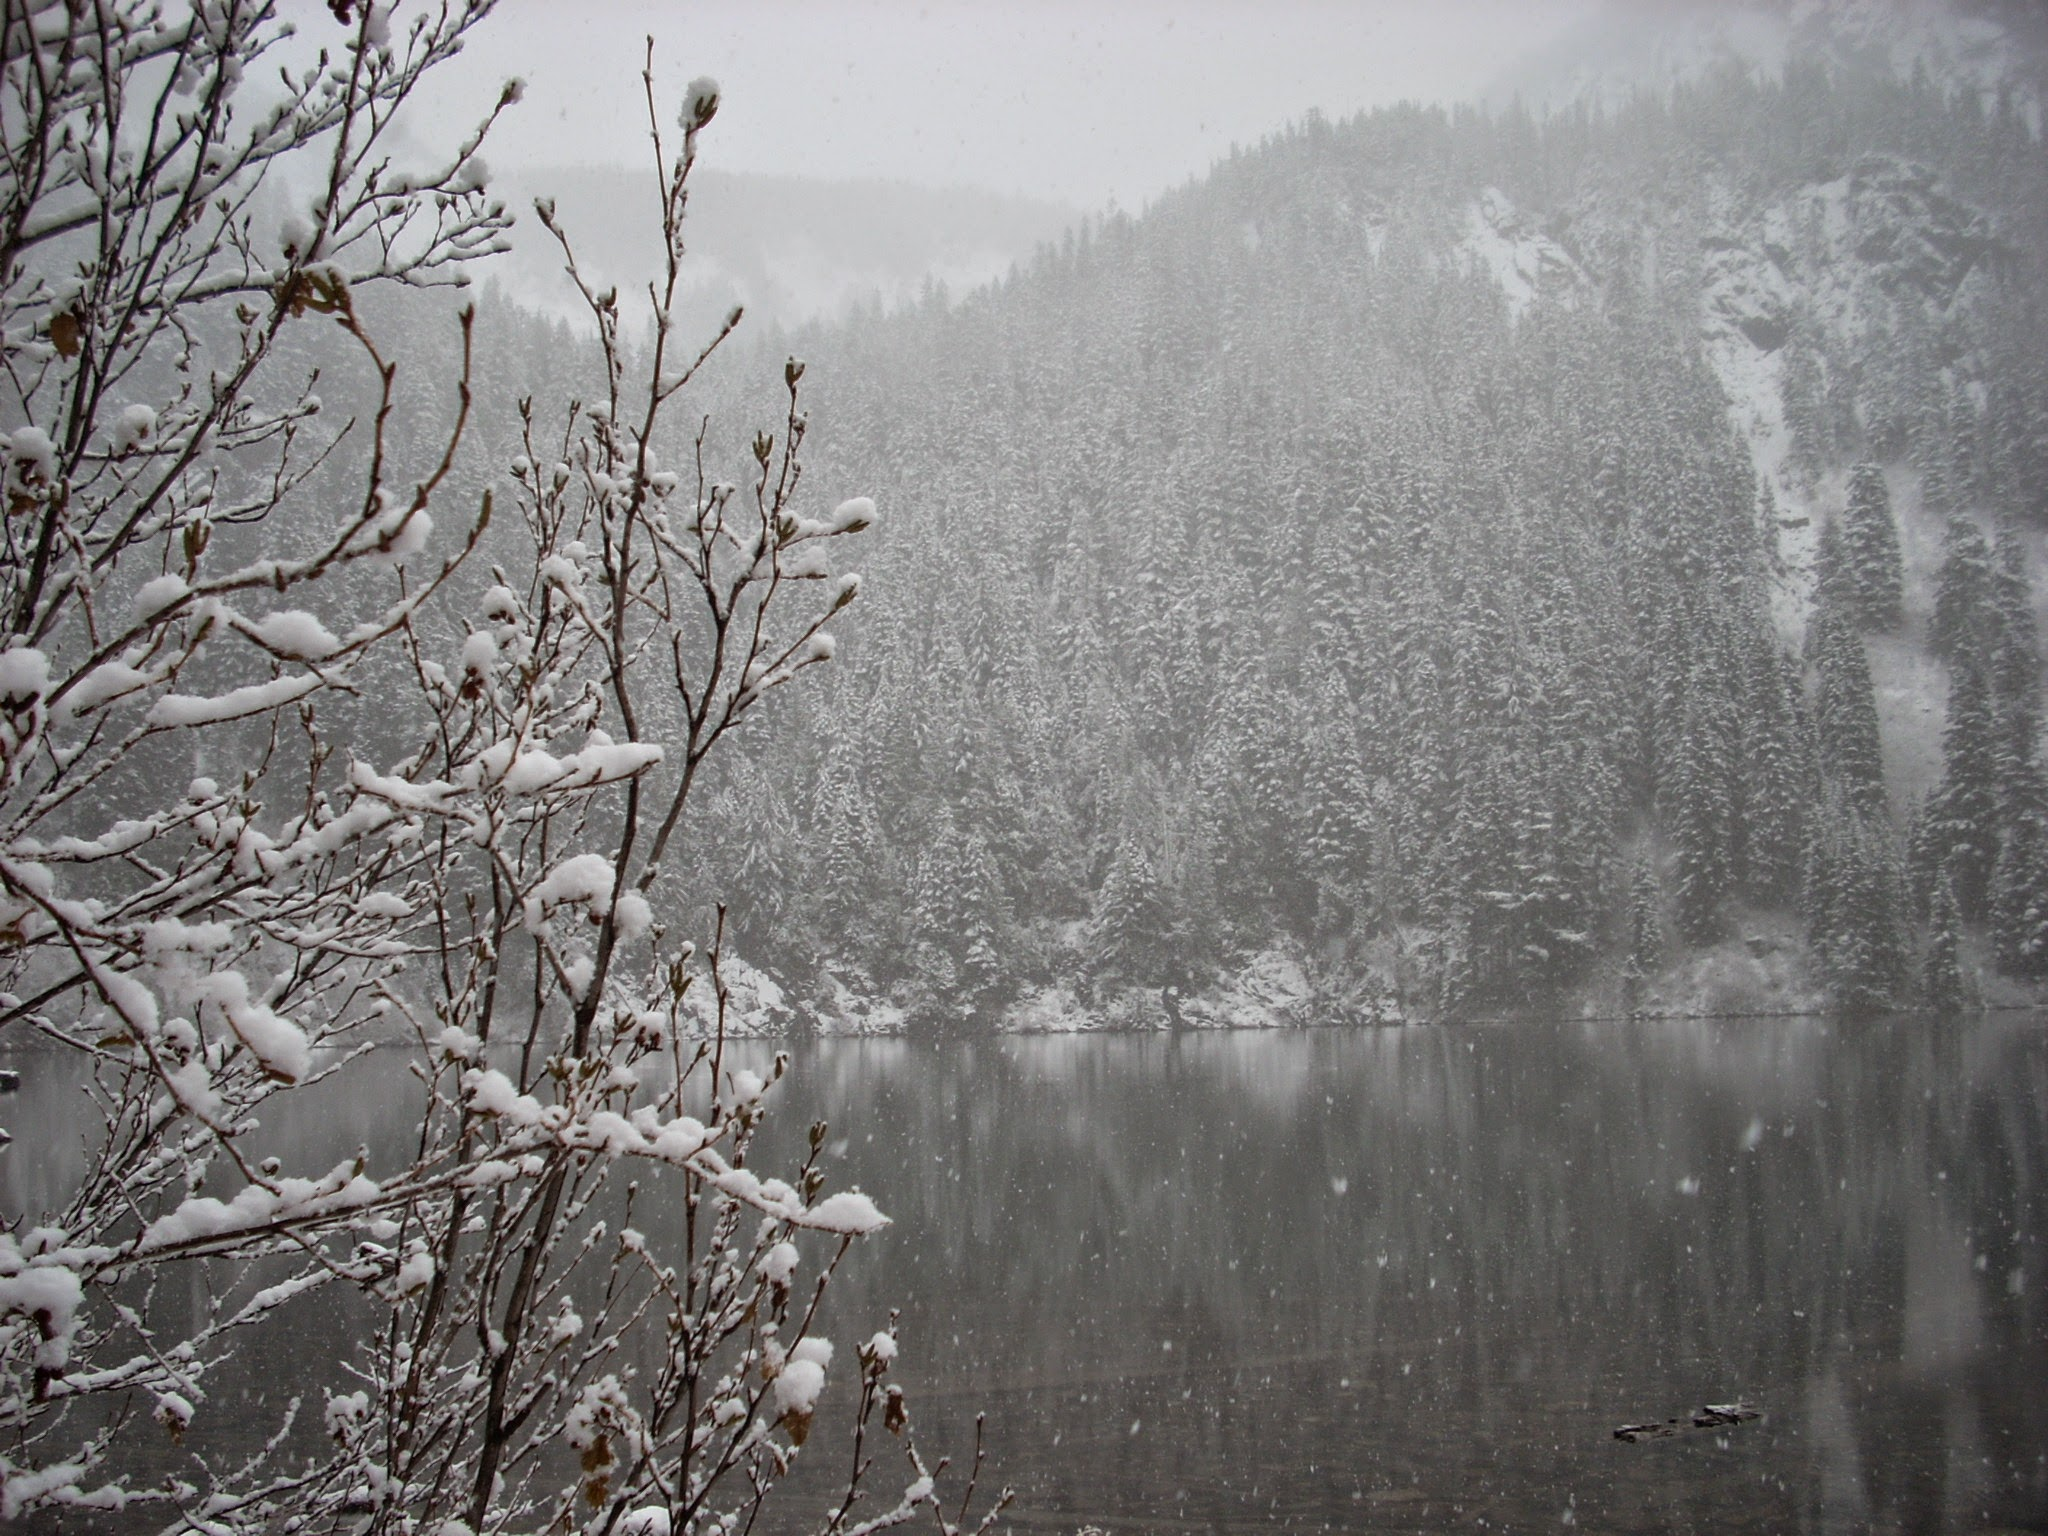 Annette Lake hike in late fall. An alpine lake is surrounded by snow covered evergreen trees and snow is falling on a gray day